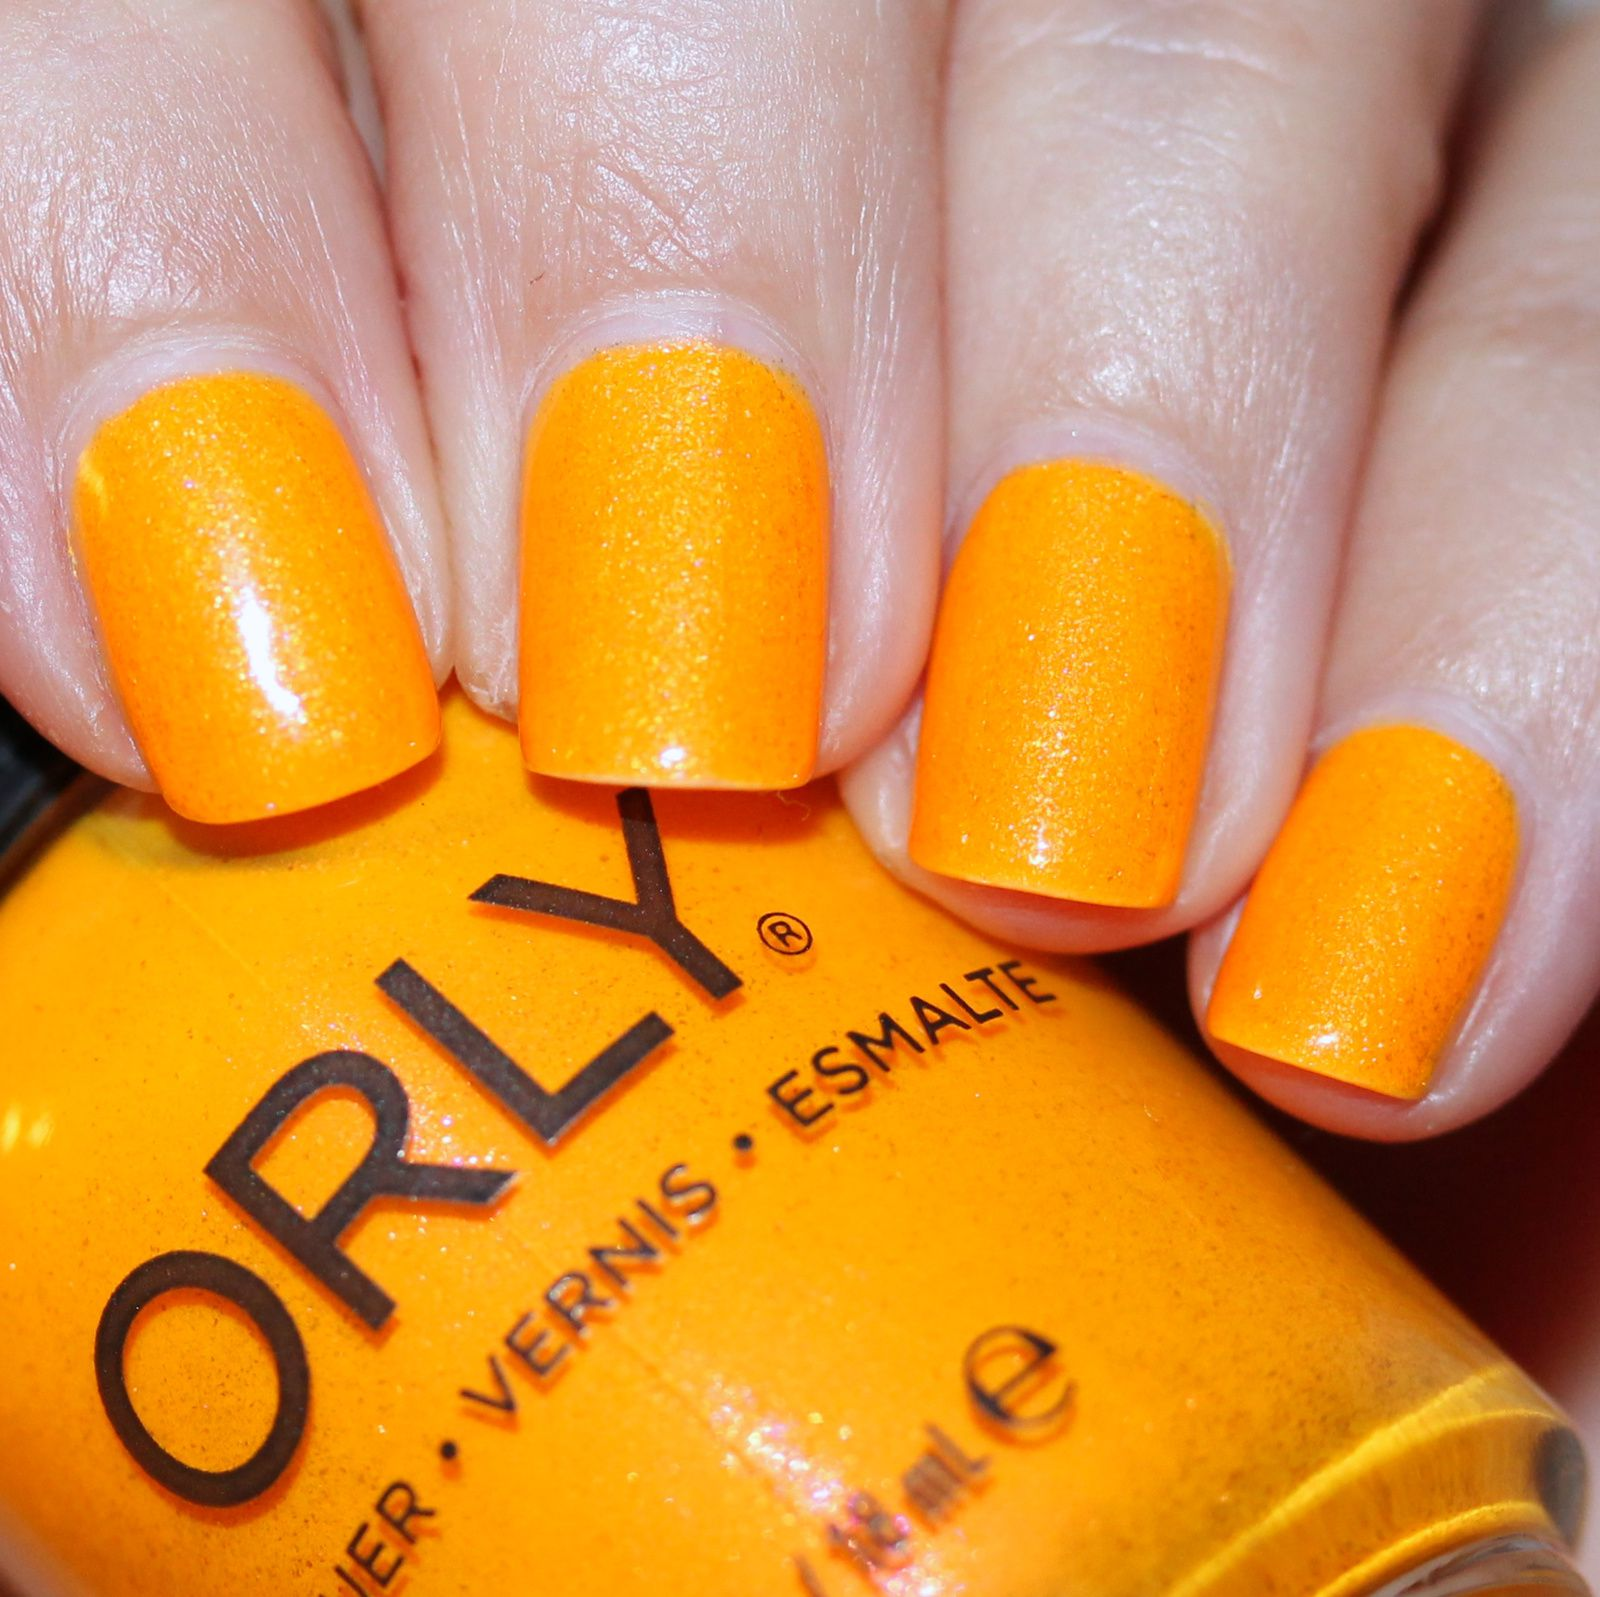 Sally Hansen Complete Care 4-in-1 Extra Moisturizing Nail Treatment / Orly Summer Sunset / HK Girl Top Coat